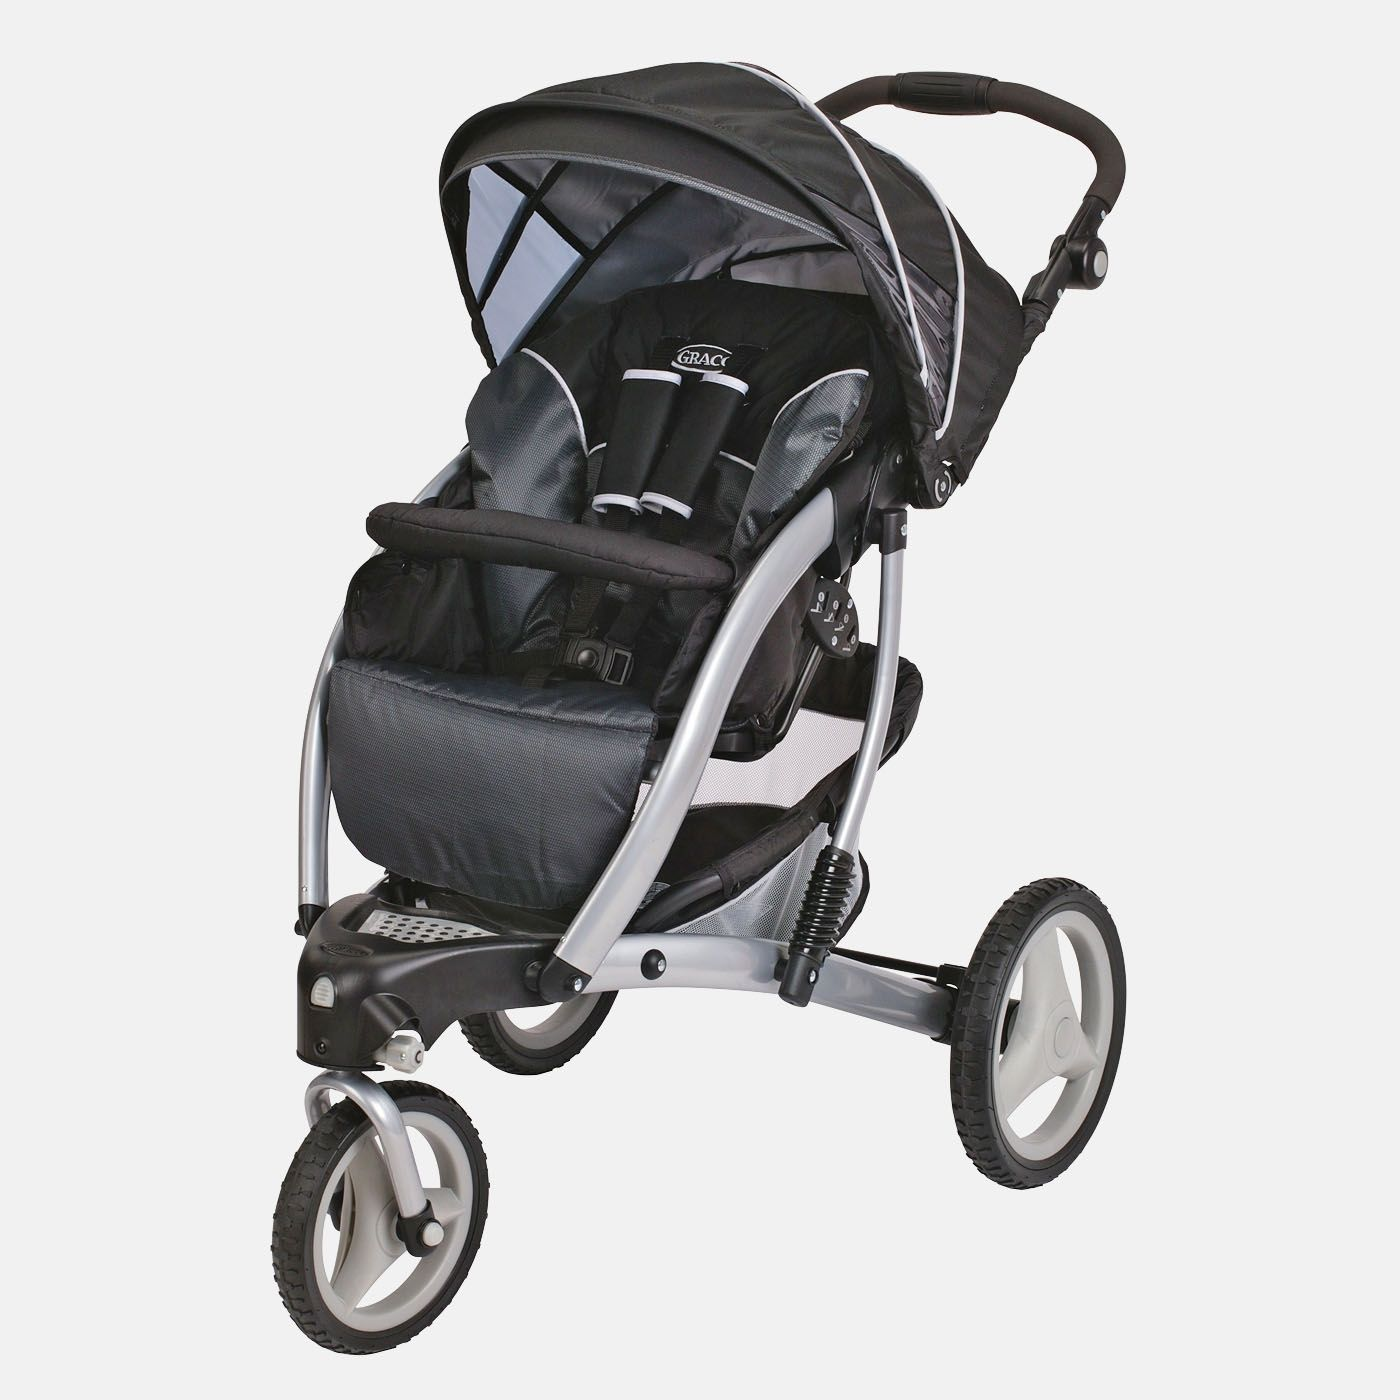 Keep your baby safe and sound in this Graco Trekko